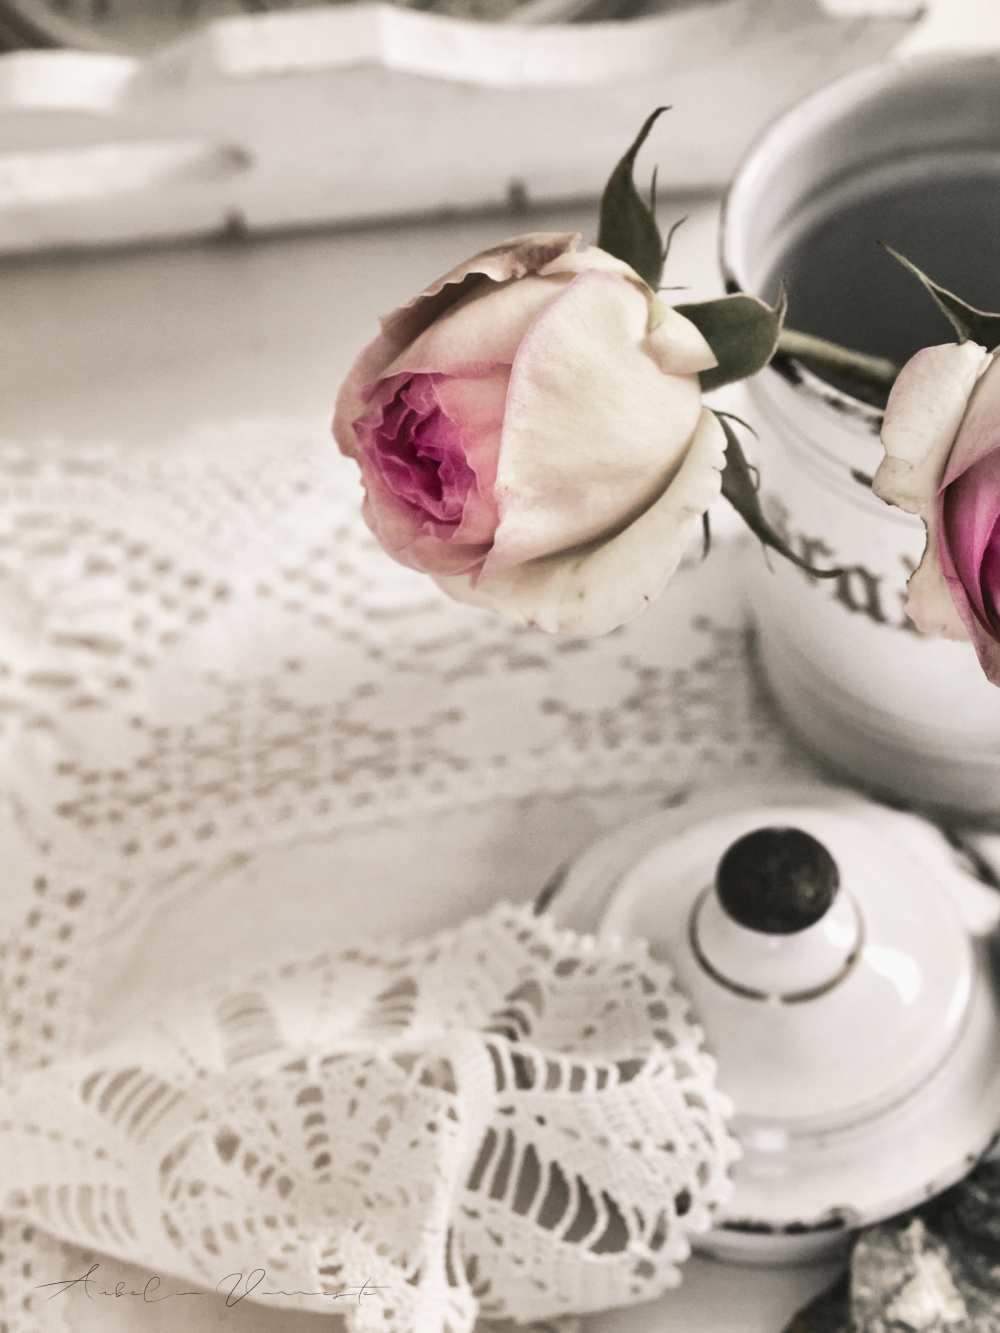 About Roses